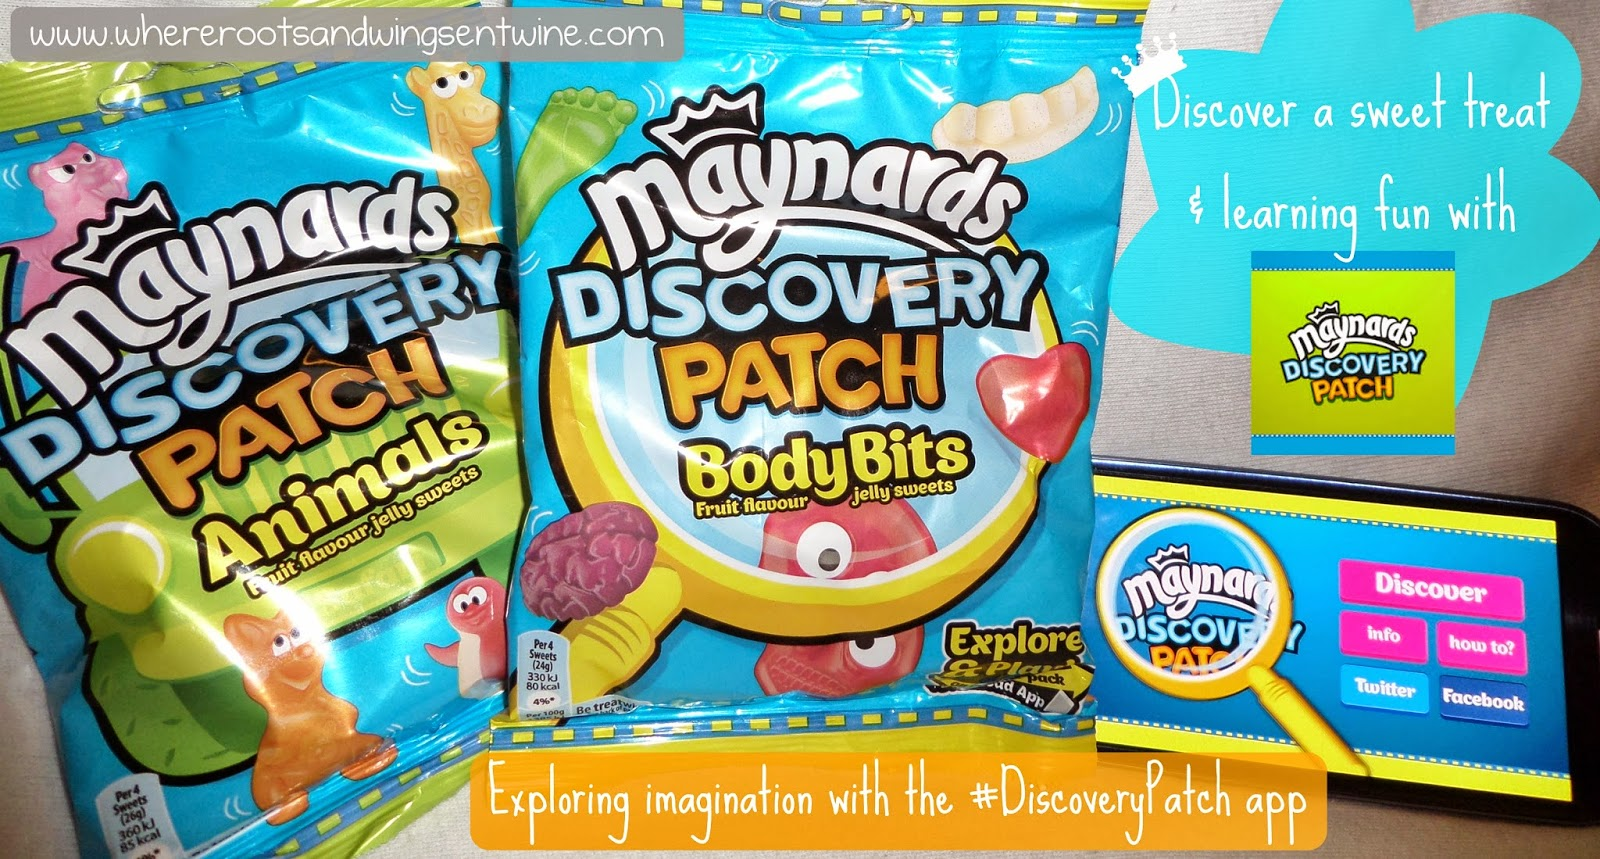 #DiscoveryPatch, shop, sweets, educational